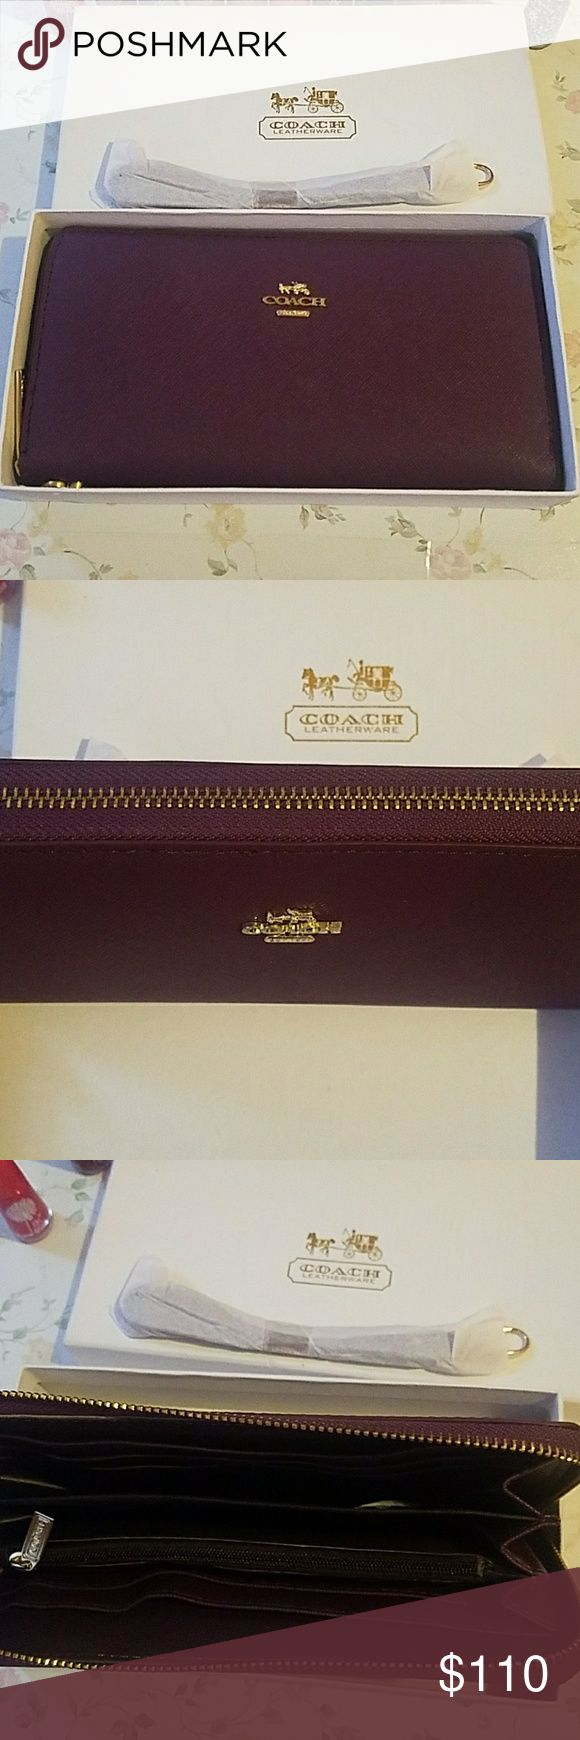 NEW Coach Wallet Beautiful Dark Purple Plum Wristlet / Checkbook.  Wine and Gold.   Purchased from a Coach store in Singapore, so might look different from American model, but it is authentic.   Brand new in box, no tags. Price is firm. Coach Bags Clutches & Wristlets